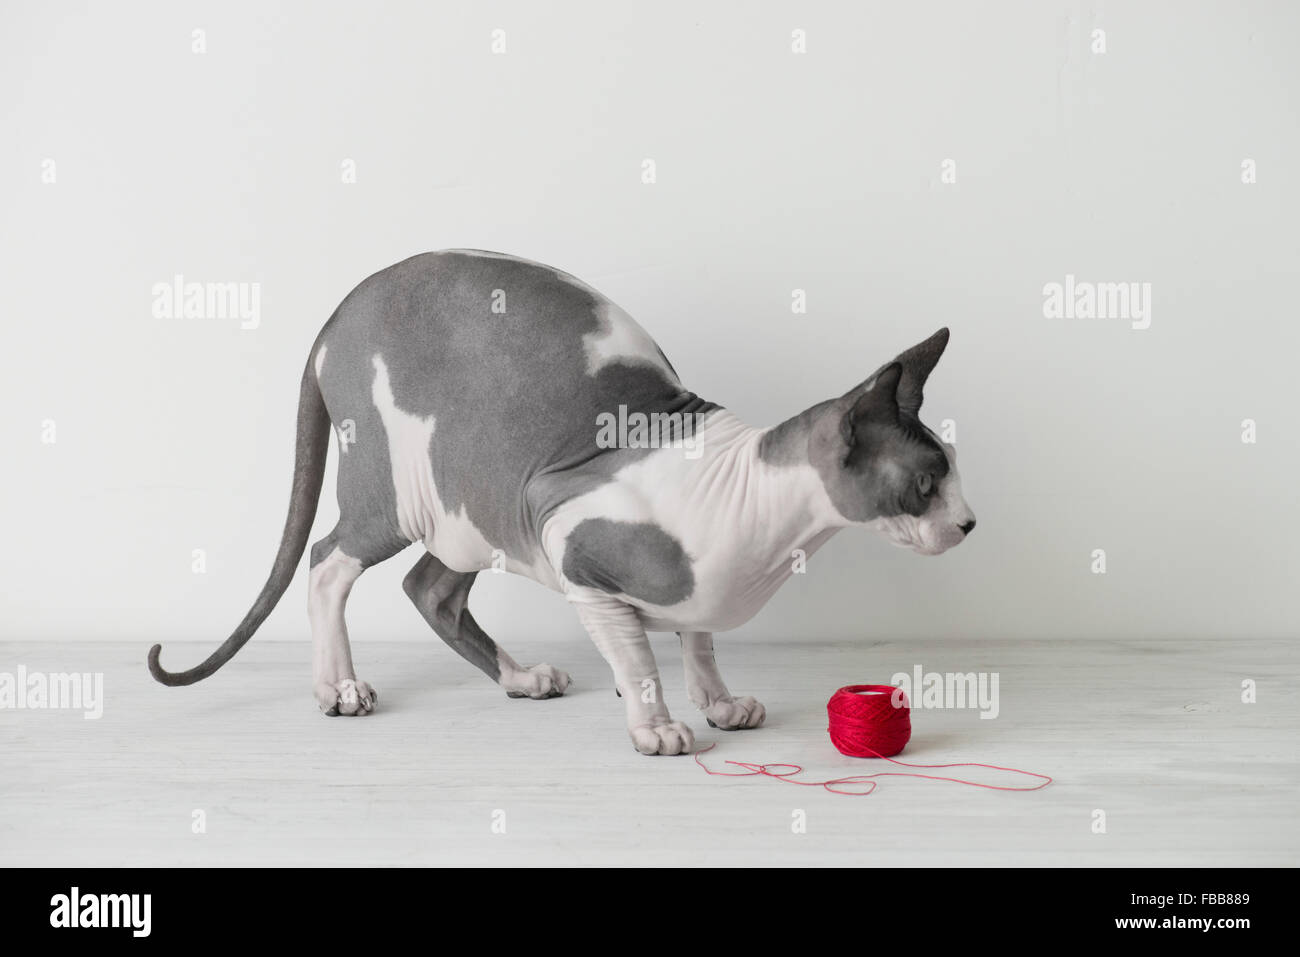 Hairless cat plays with red string - Stock Image